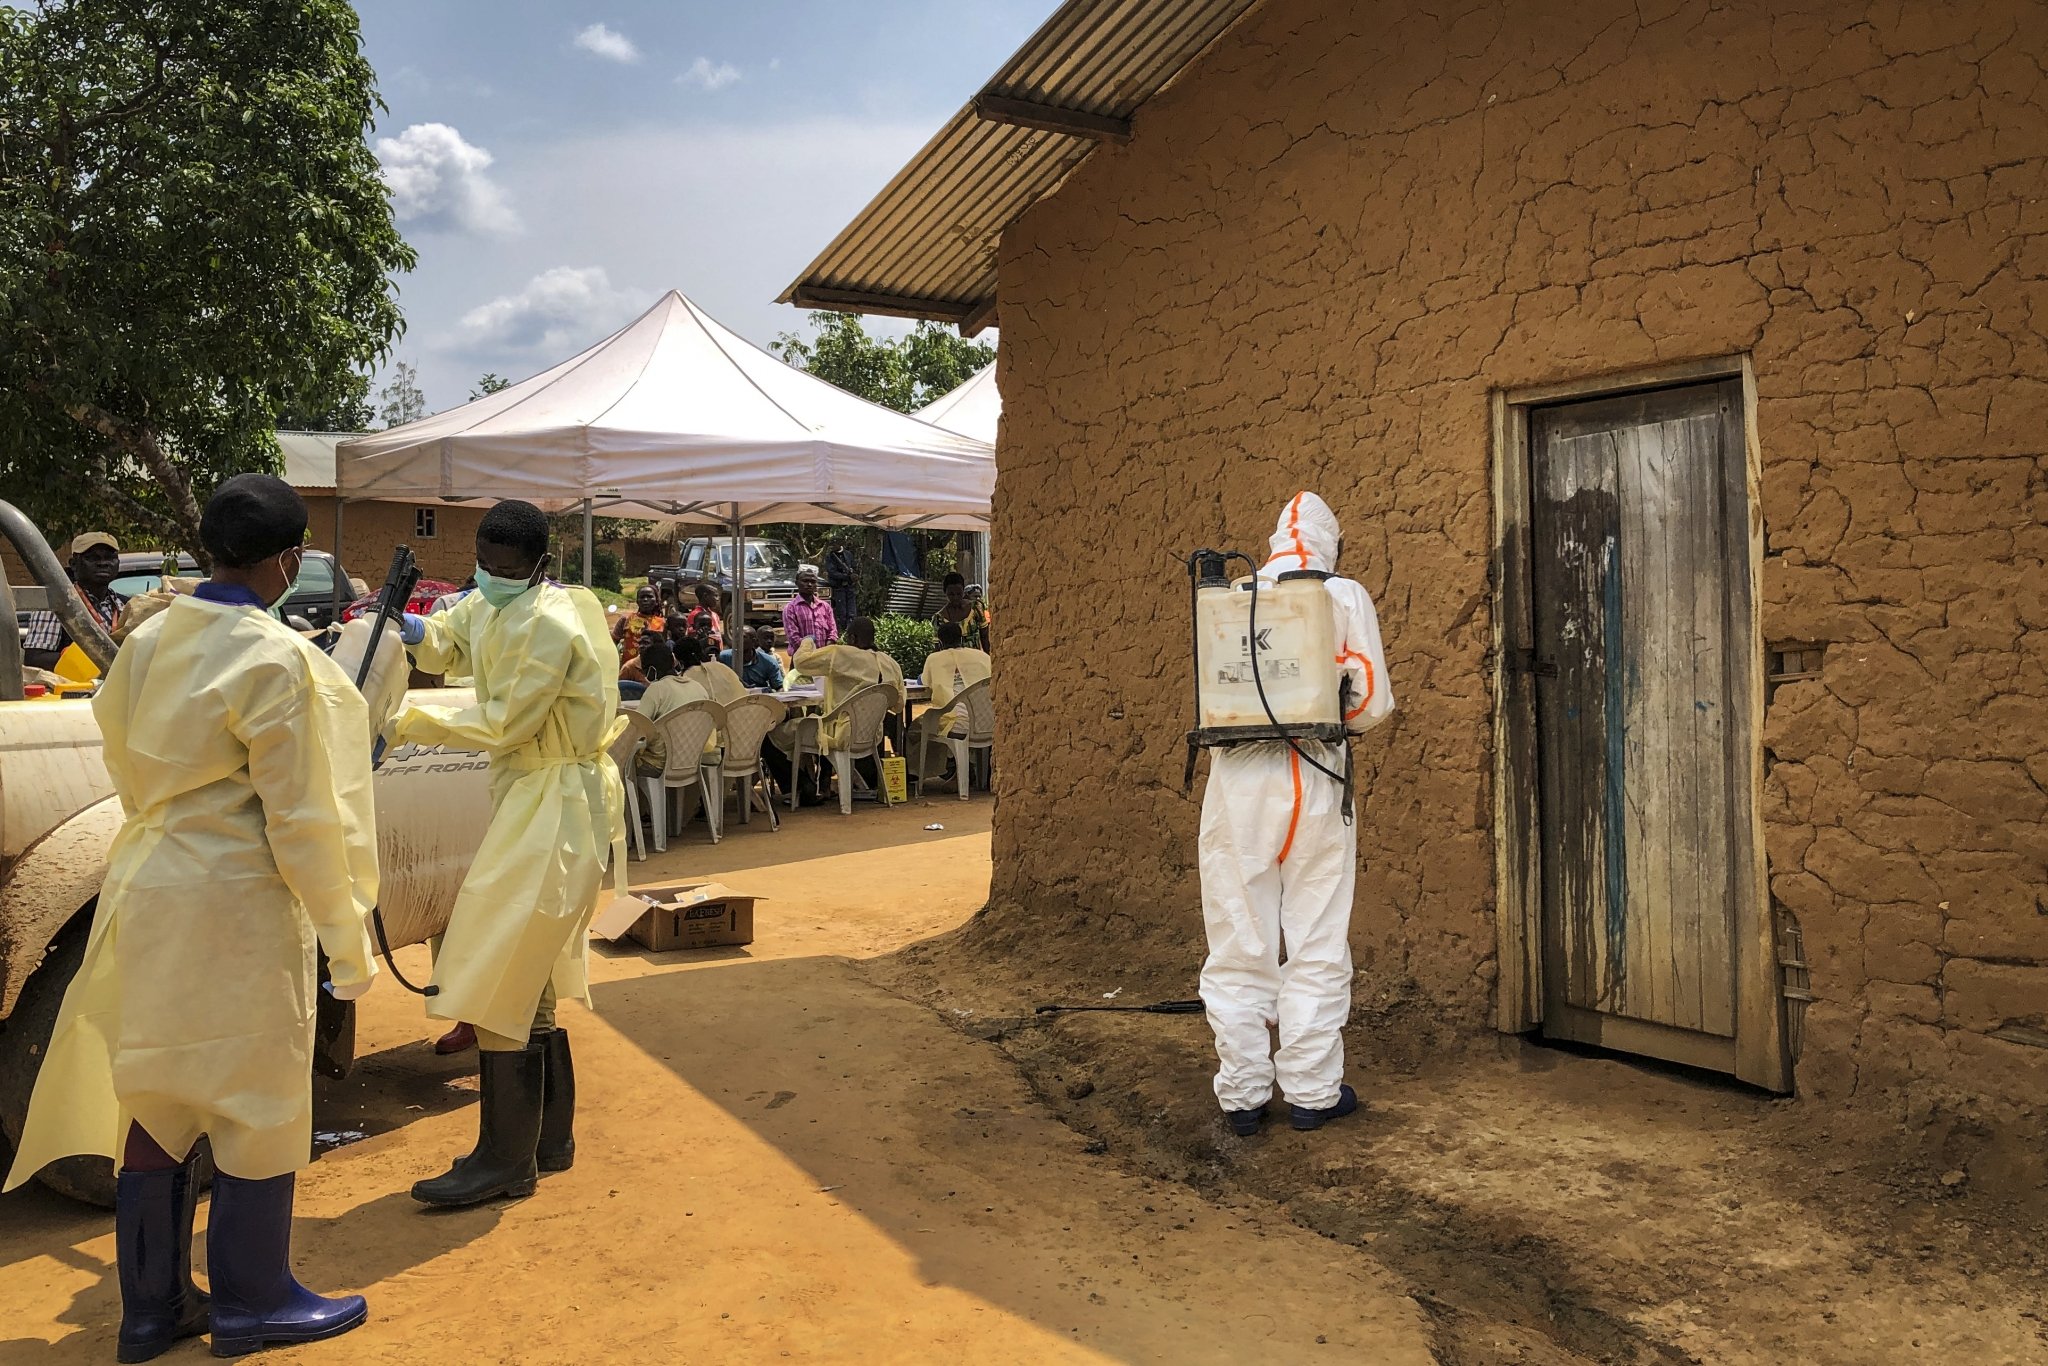 UN Health Calls Emergency Meeting to Discuss Ebola Outbreak